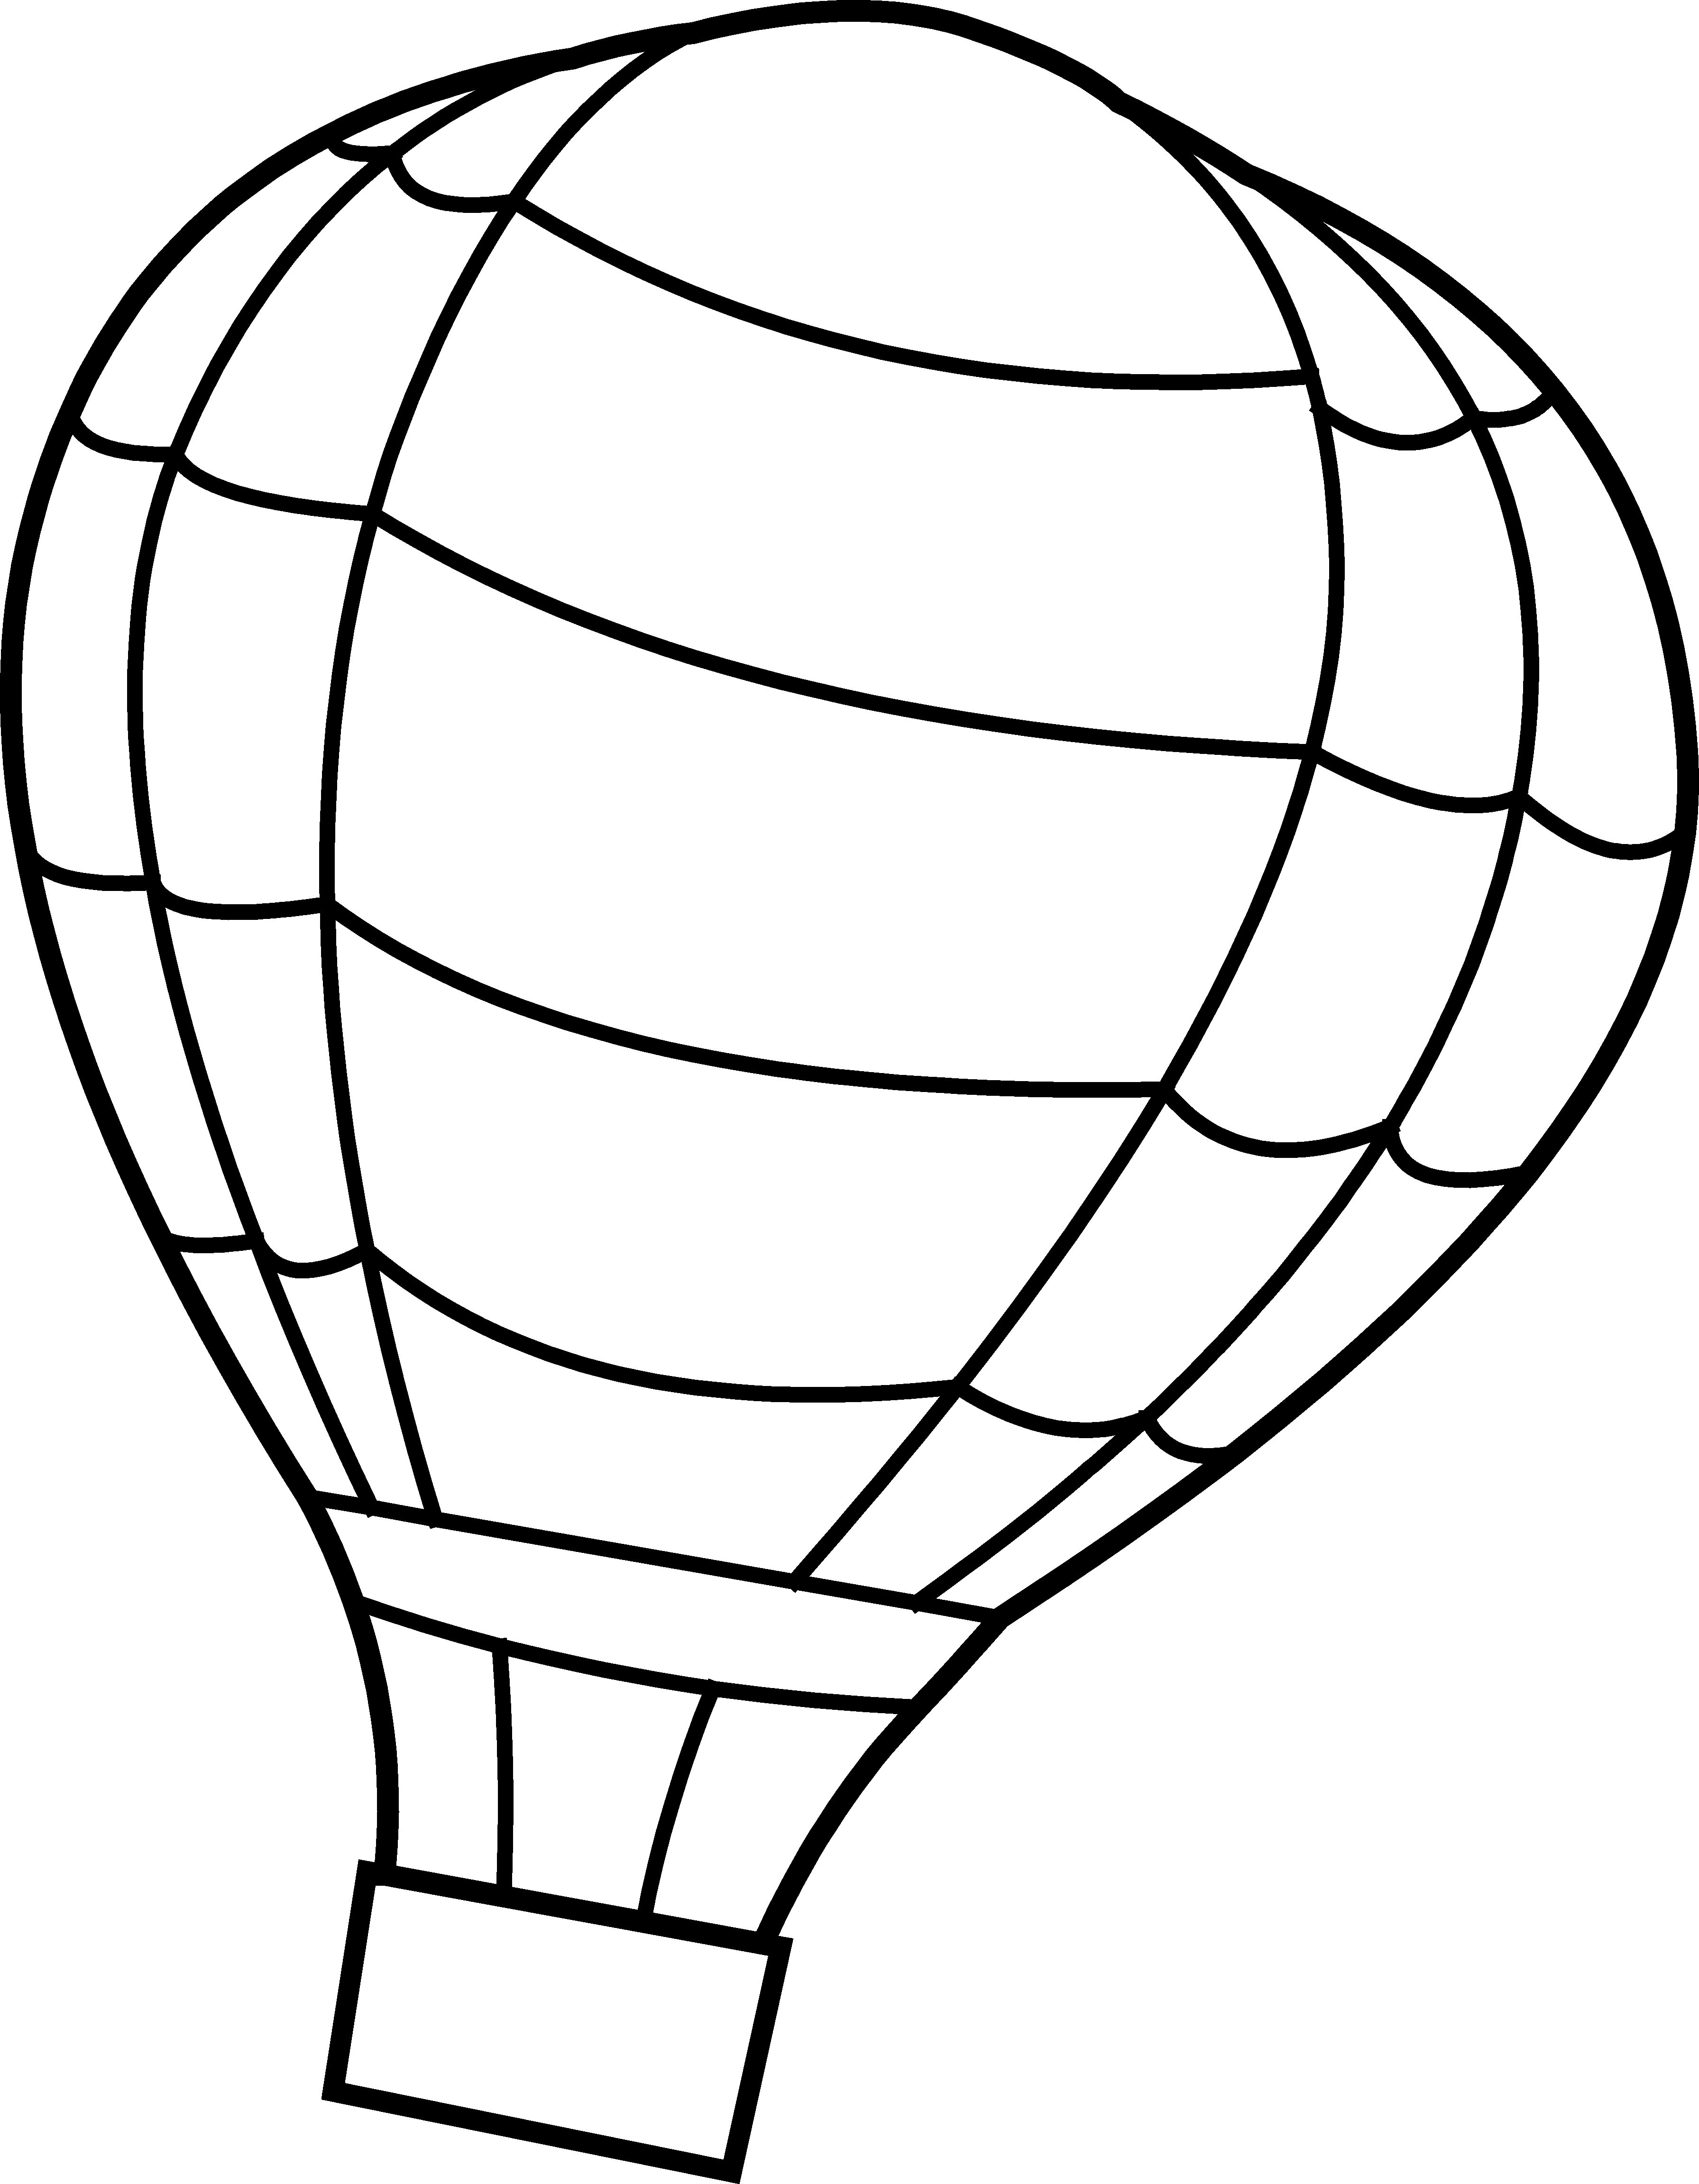 hot air balloons coloring pages hot air balloon drawing free download on clipartmag pages hot balloons coloring air